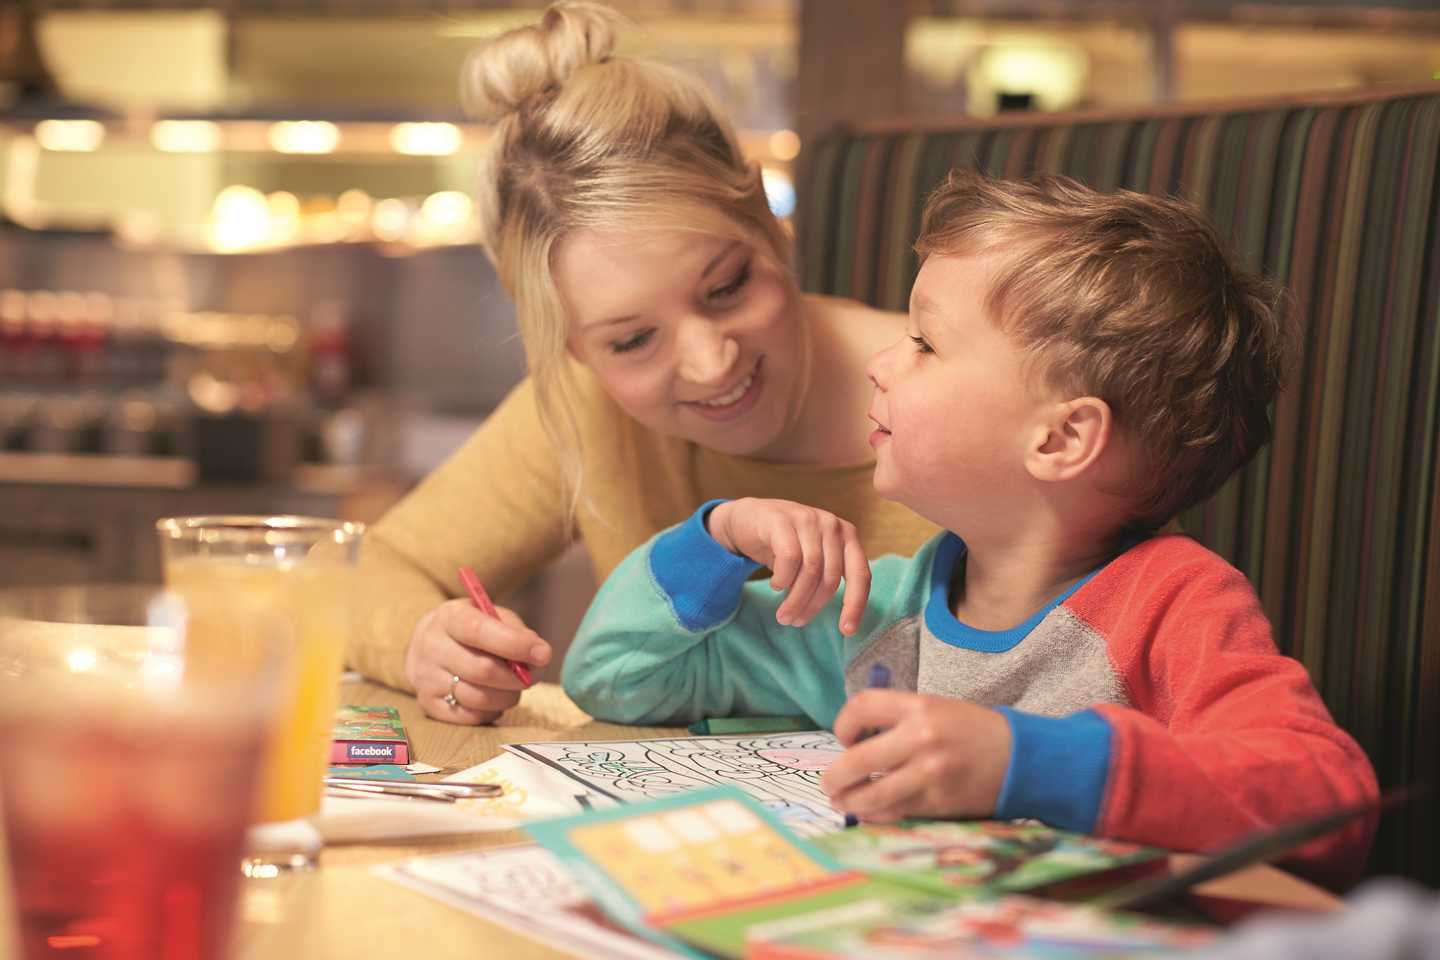 A little girl boy lunch with his mum